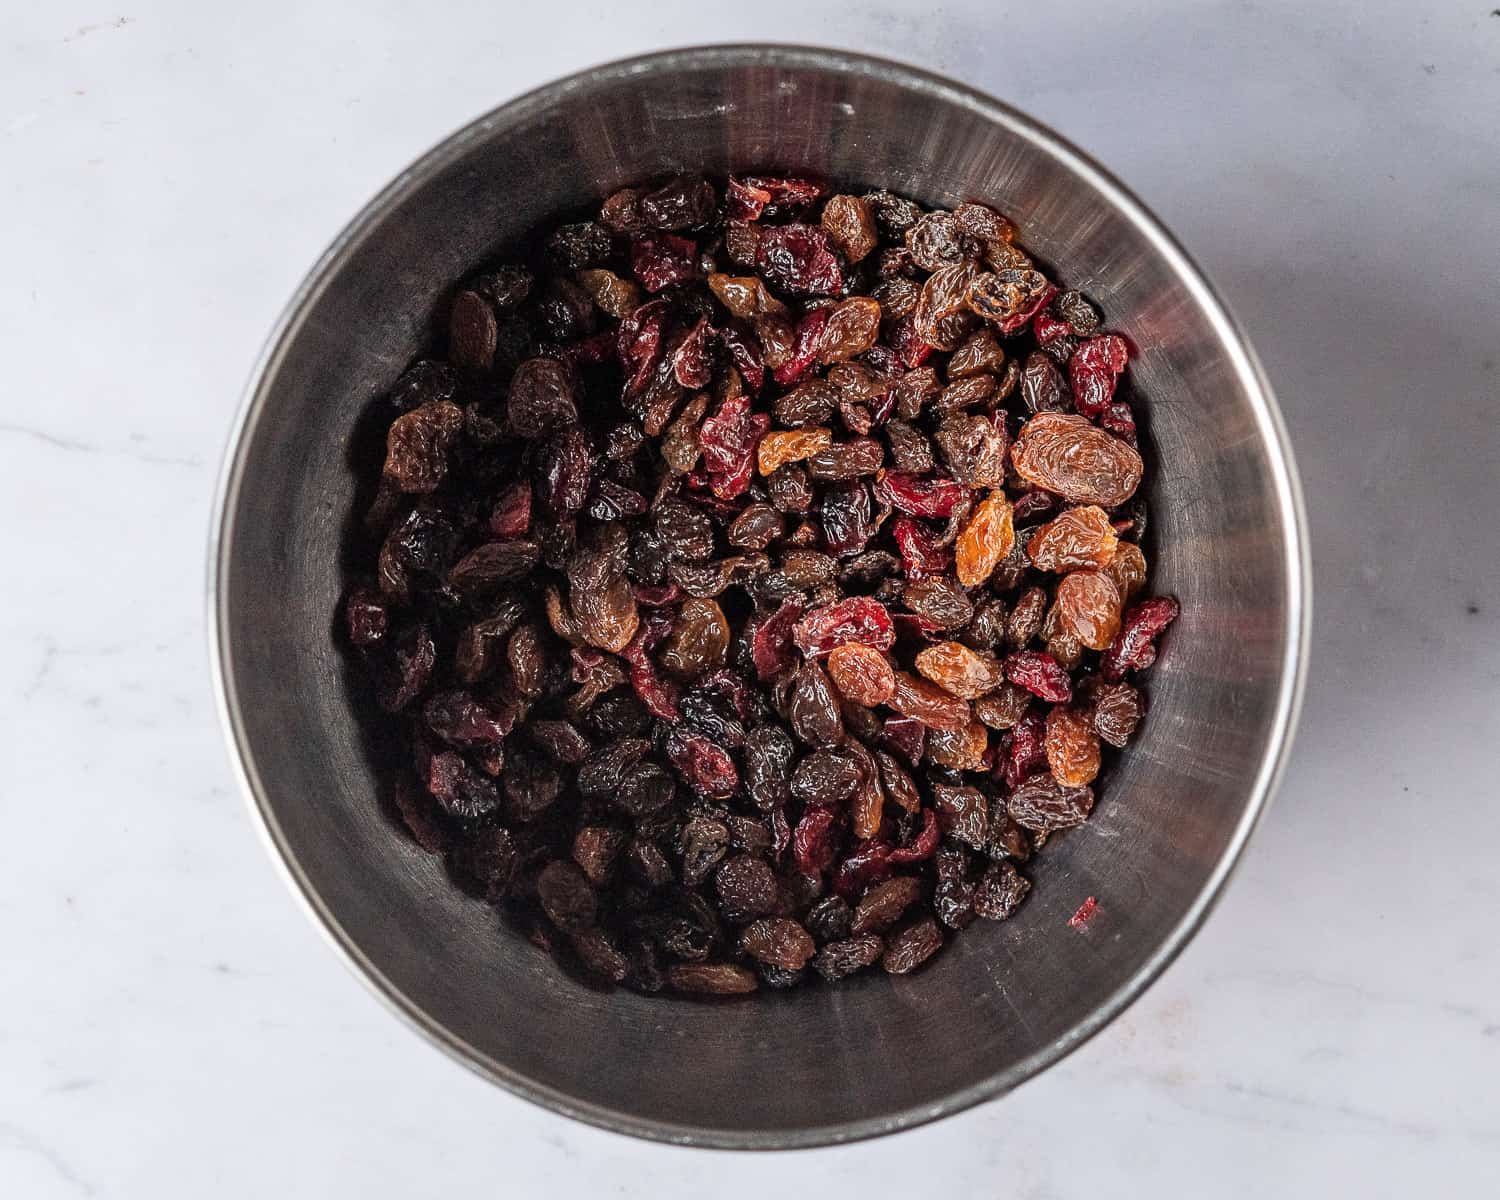 A bowl of soaked dried fruits.